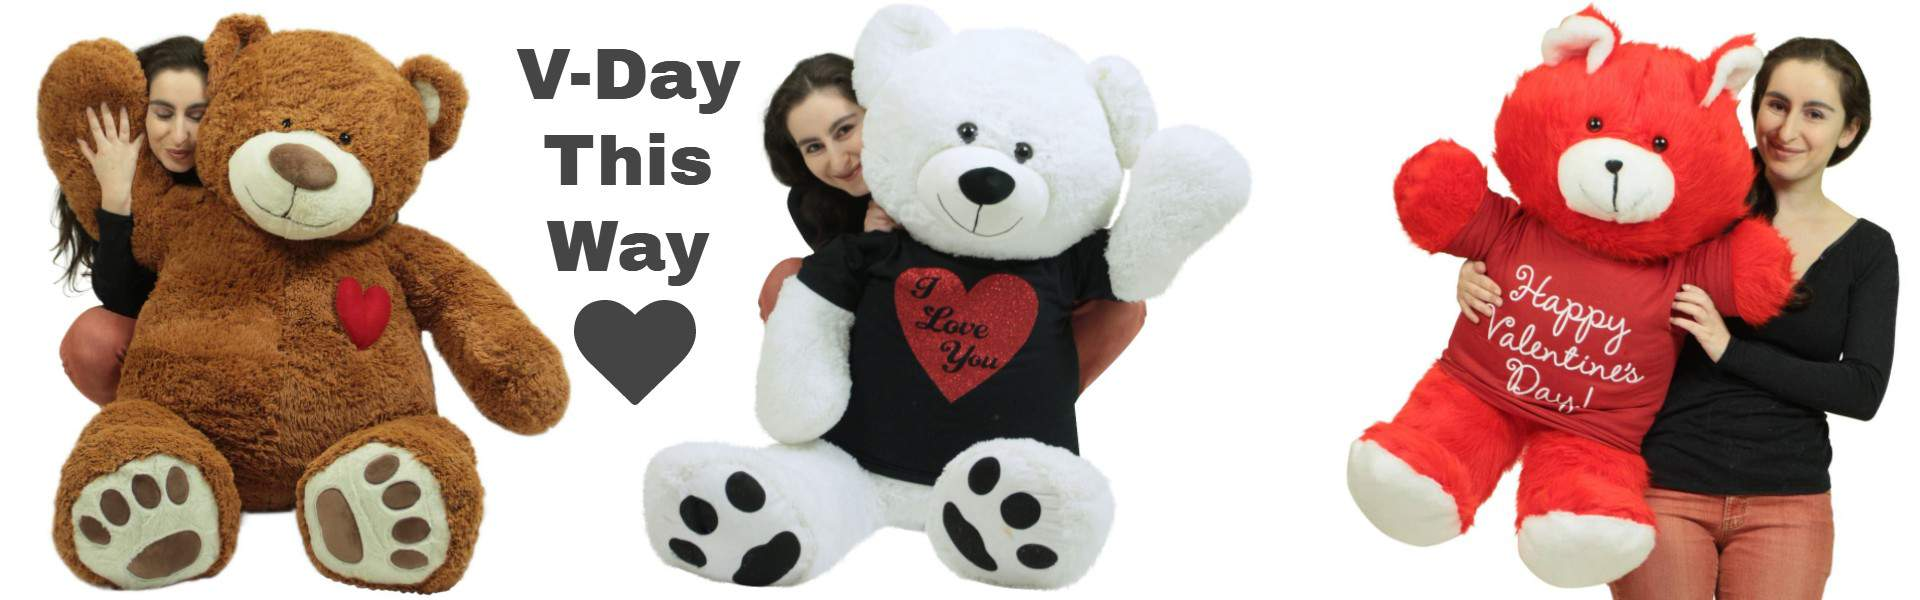 giant valentines day stuffed animals big plush personalized giant teddy bears and custom large stuffed giant valentines